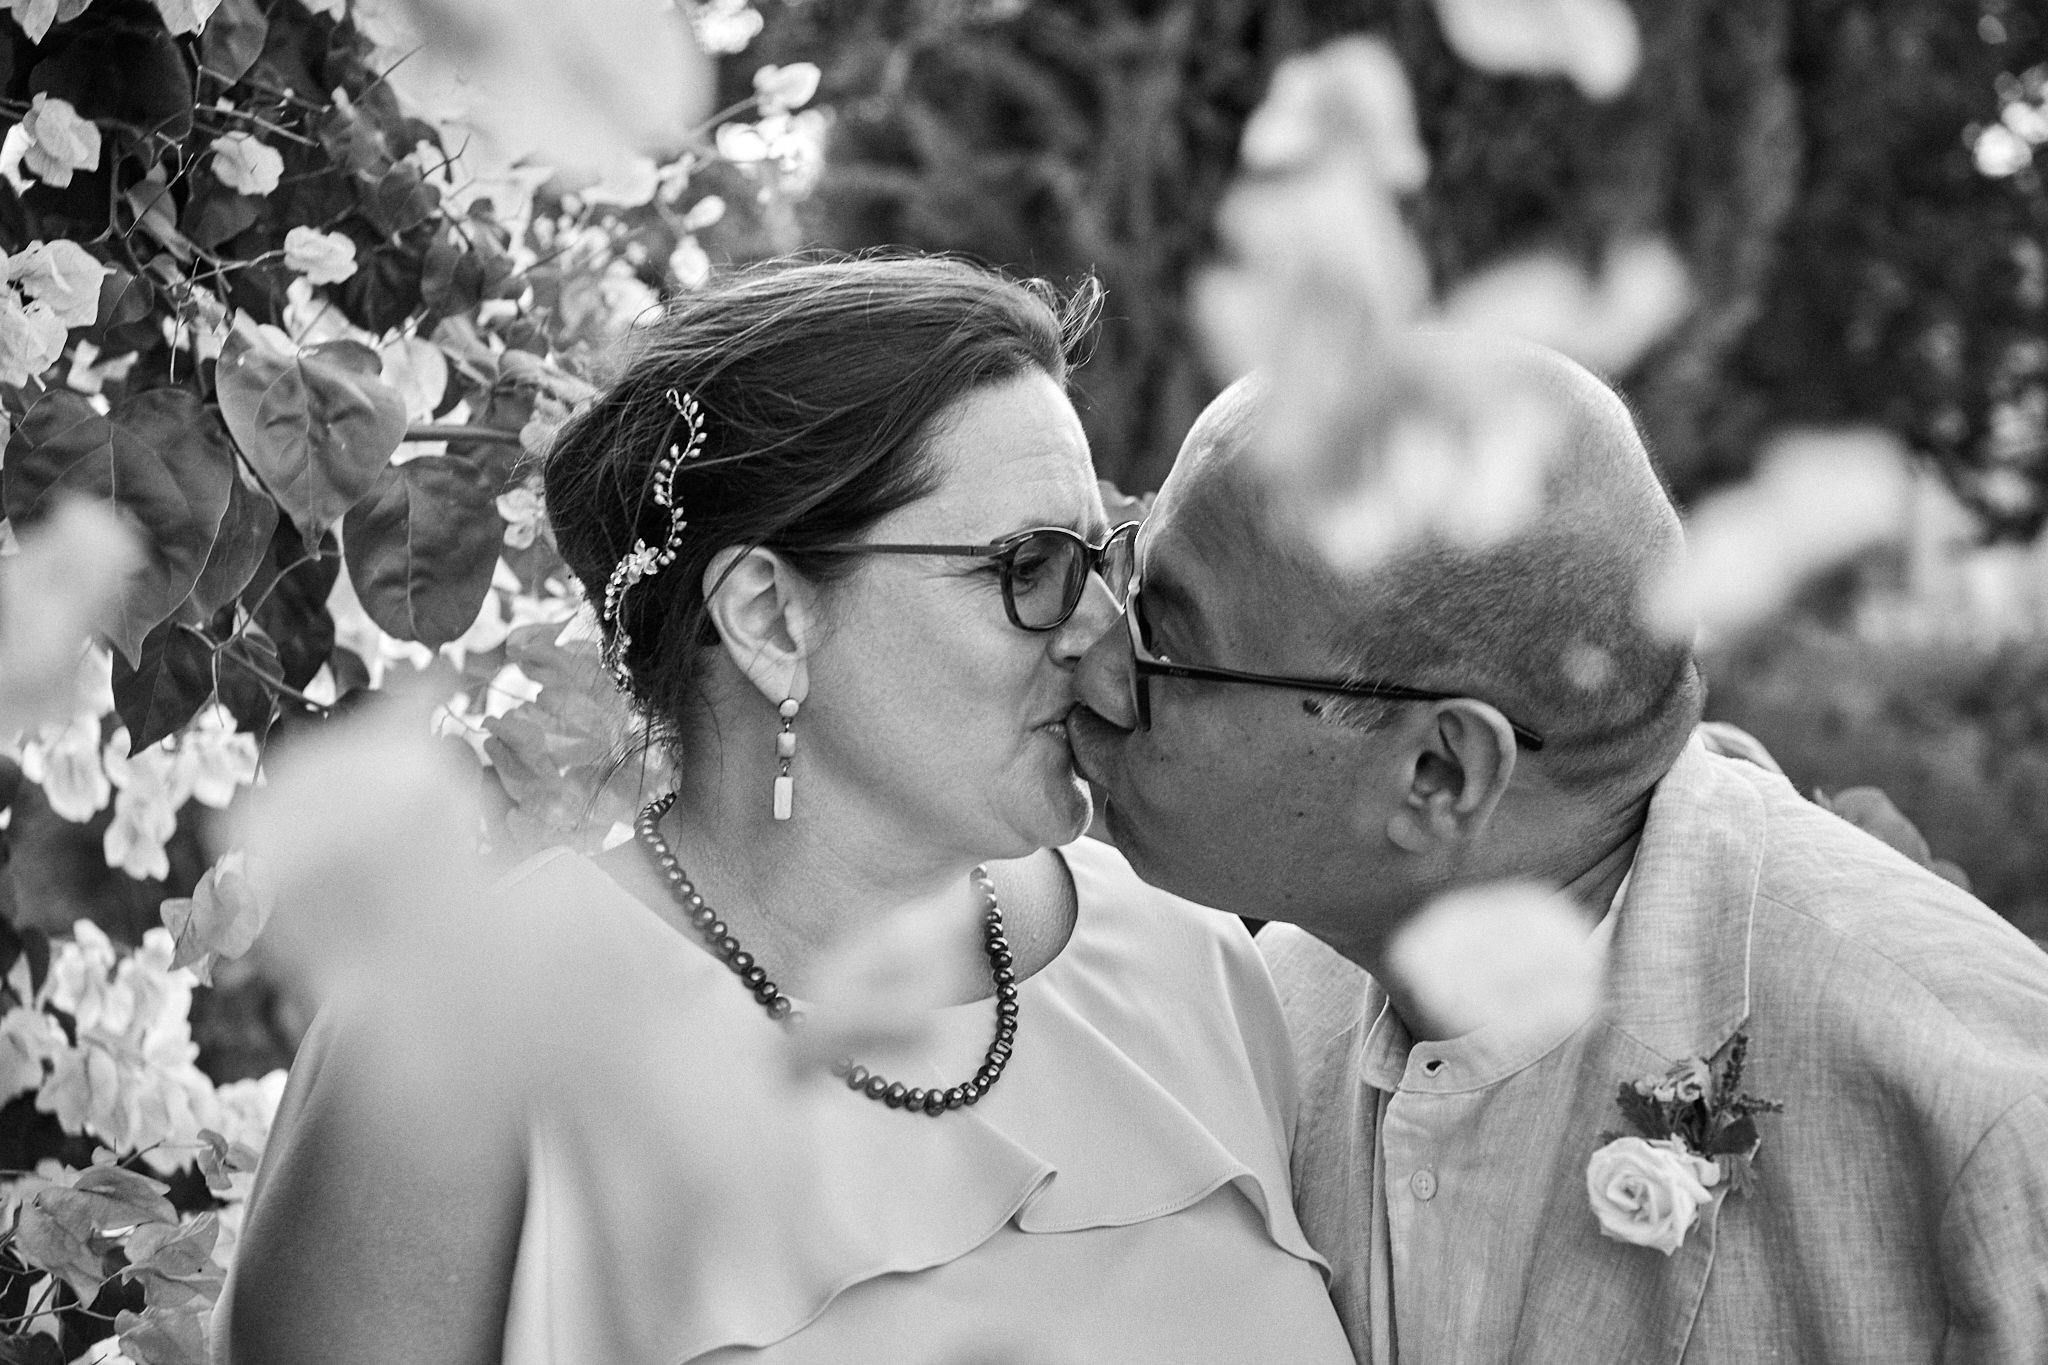 The Black and white (B&W / Monochrome) photographs from the  Wedding of Carolyn and Avirup, which was held at Natura Beach Hotel, Polis in Cyprus.